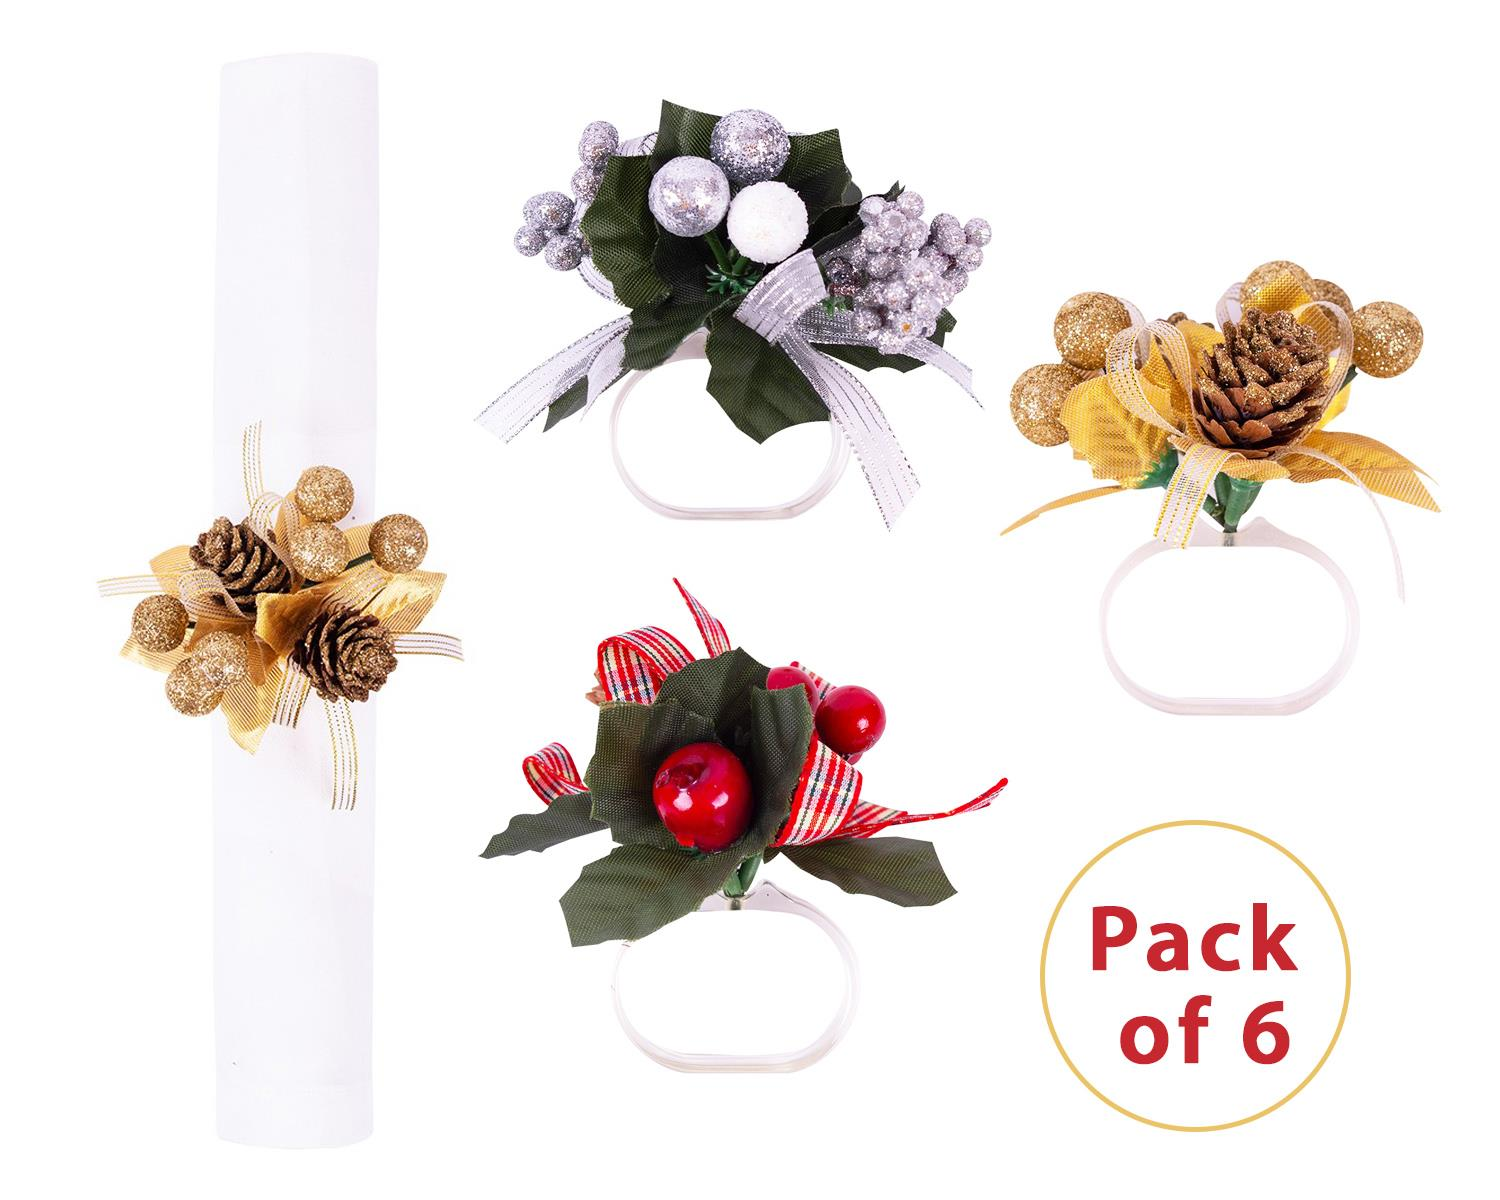 6x Napkin Rings Set Floral Berry Forest Leaves Christmas Festive Silver Red Gold Ebay